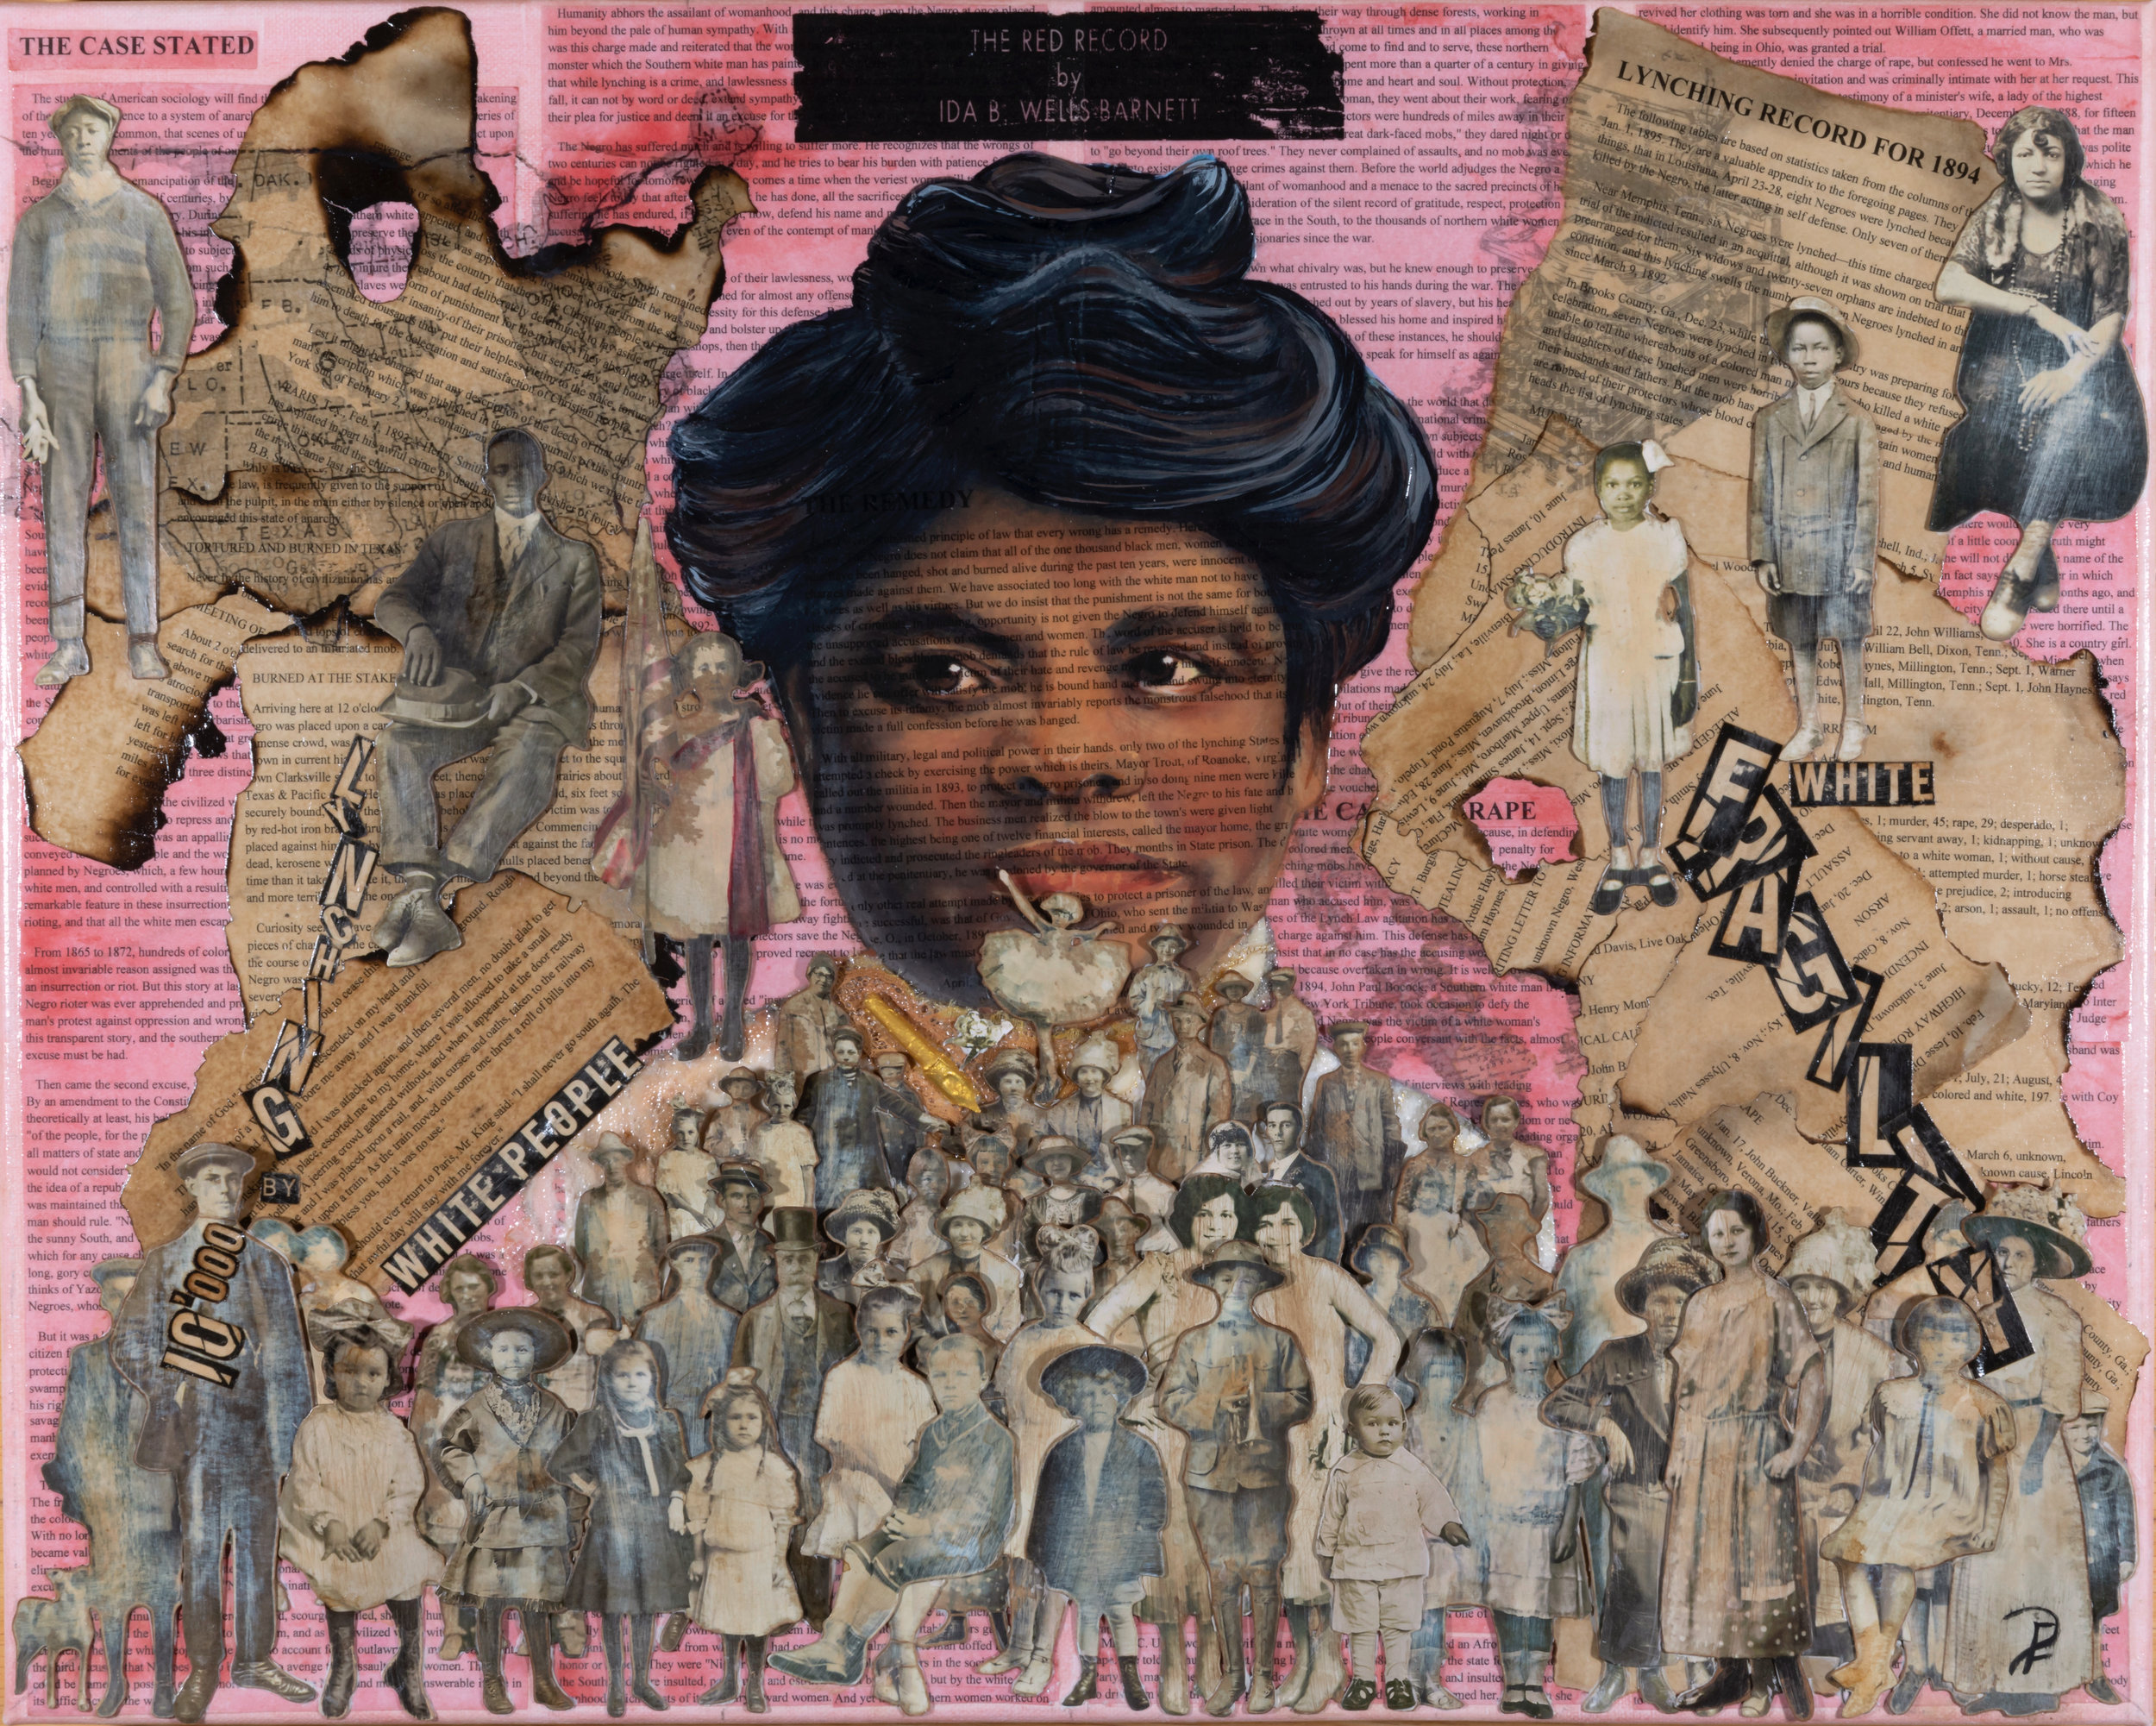 Ida b. wells collage - One of seven Story collages that Patsy Ferrell will be creating for the upcoming Women Are Human Traveling Exhibit